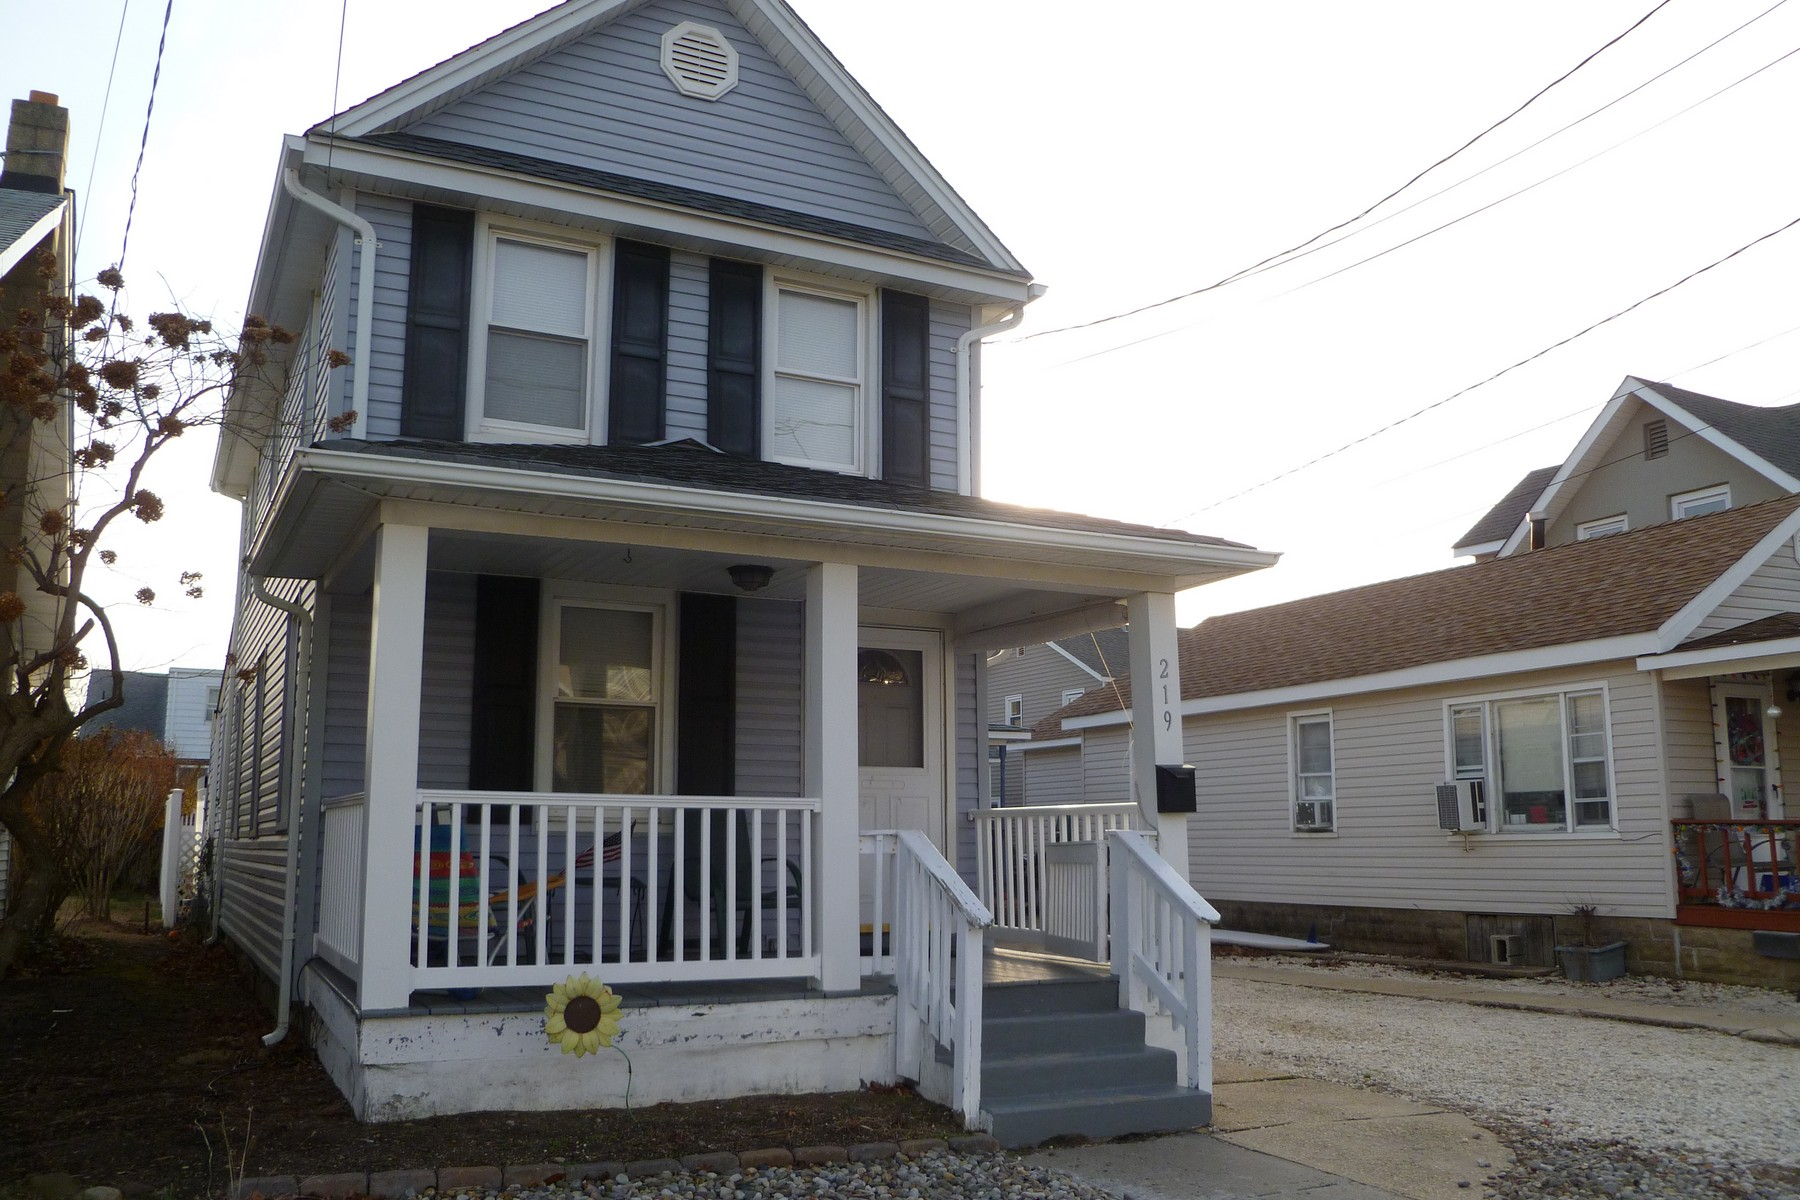 Single Family Home for Sale at 2 Blocks to the beach 219 15th Ave Belmar, New Jersey 07719 United States